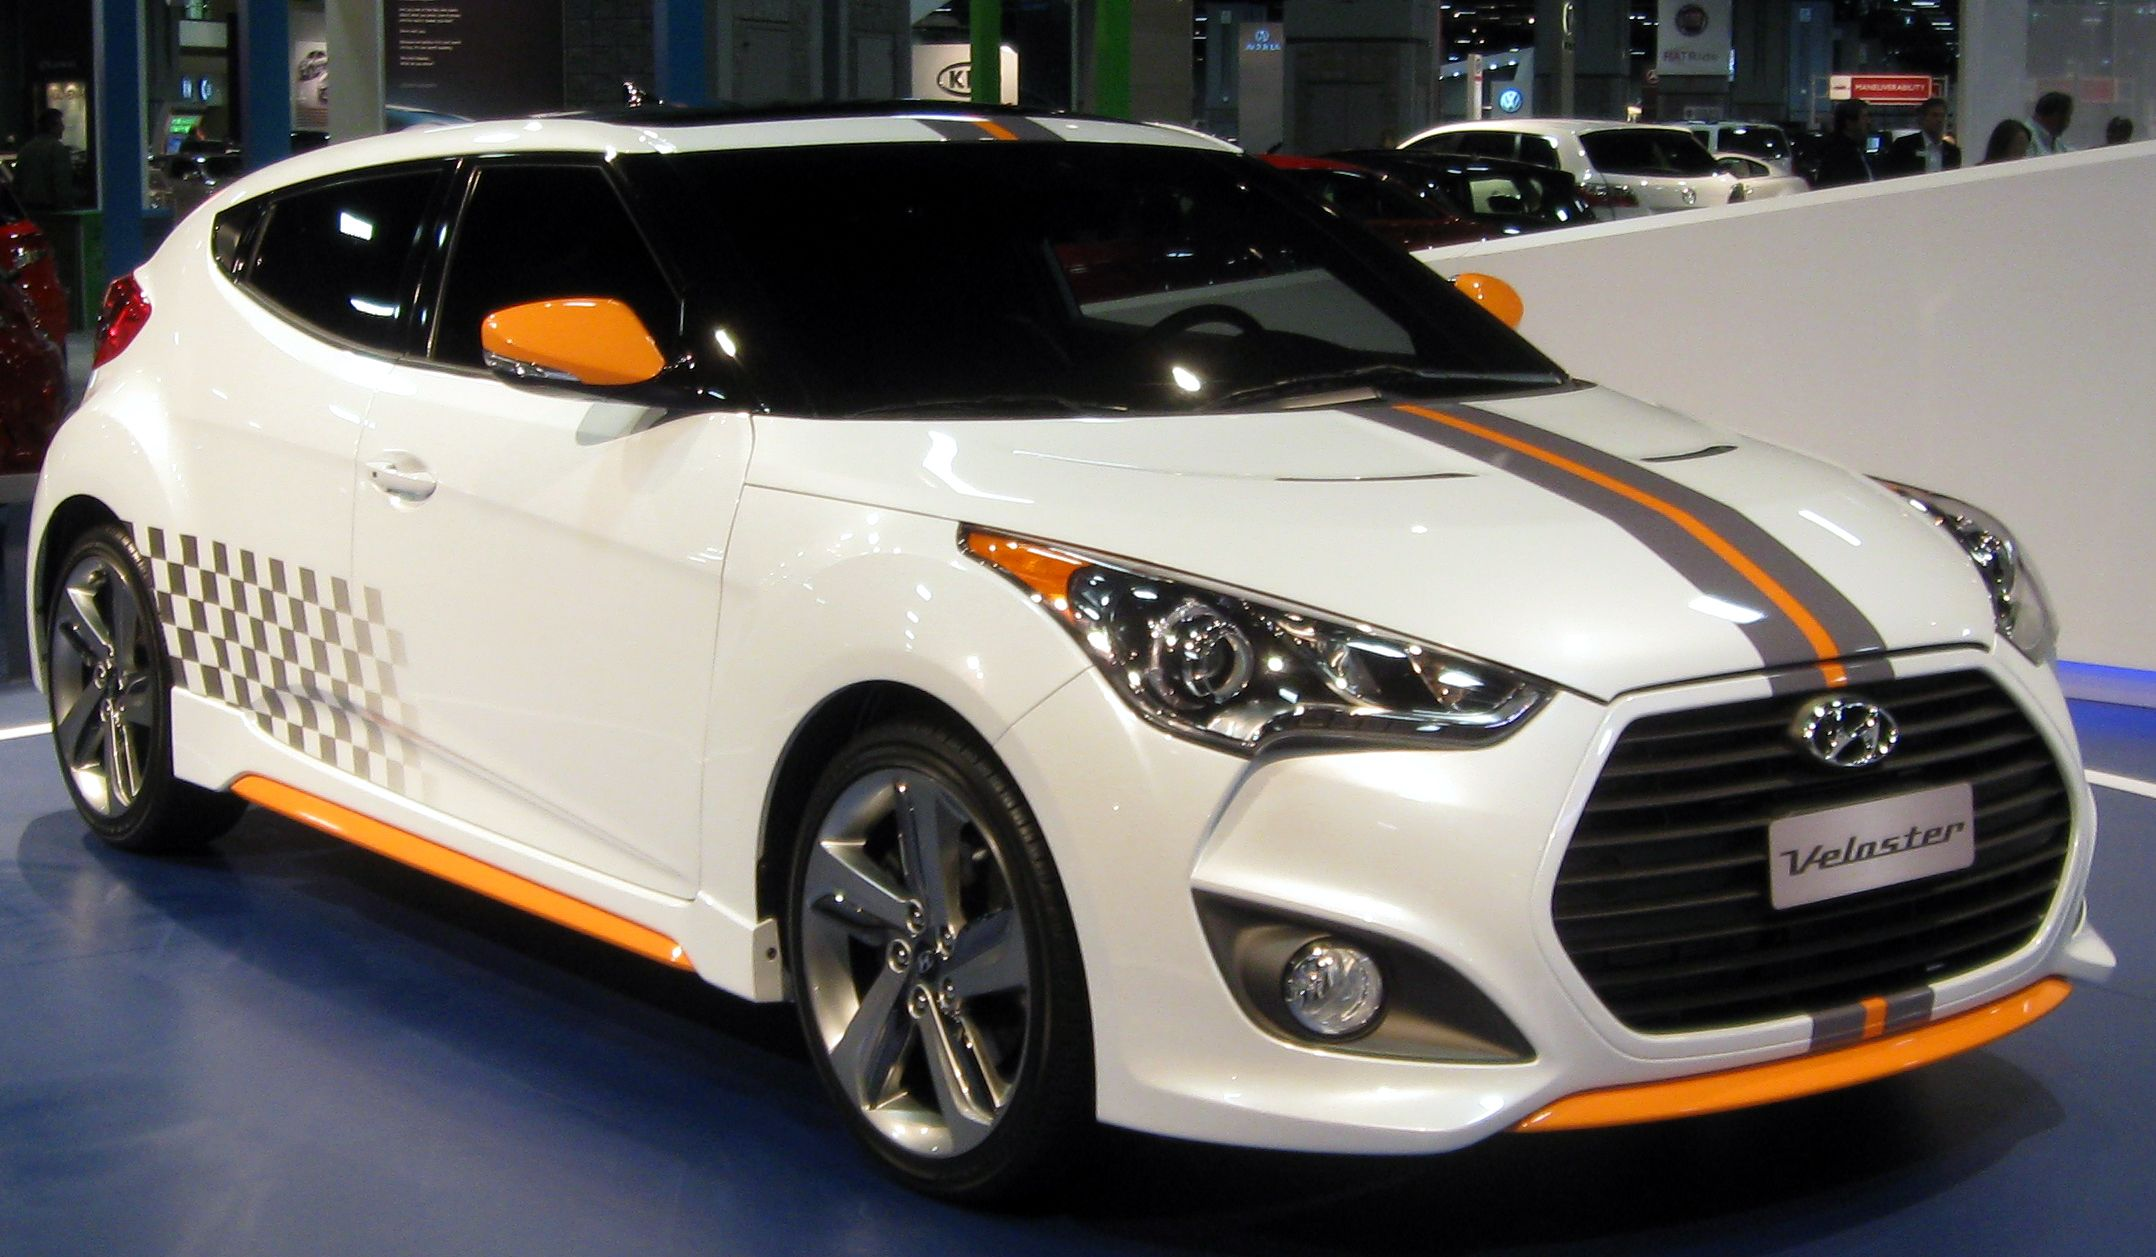 Hyundai Veloster Turbo Review Cars Pictures Hyundai Veloster